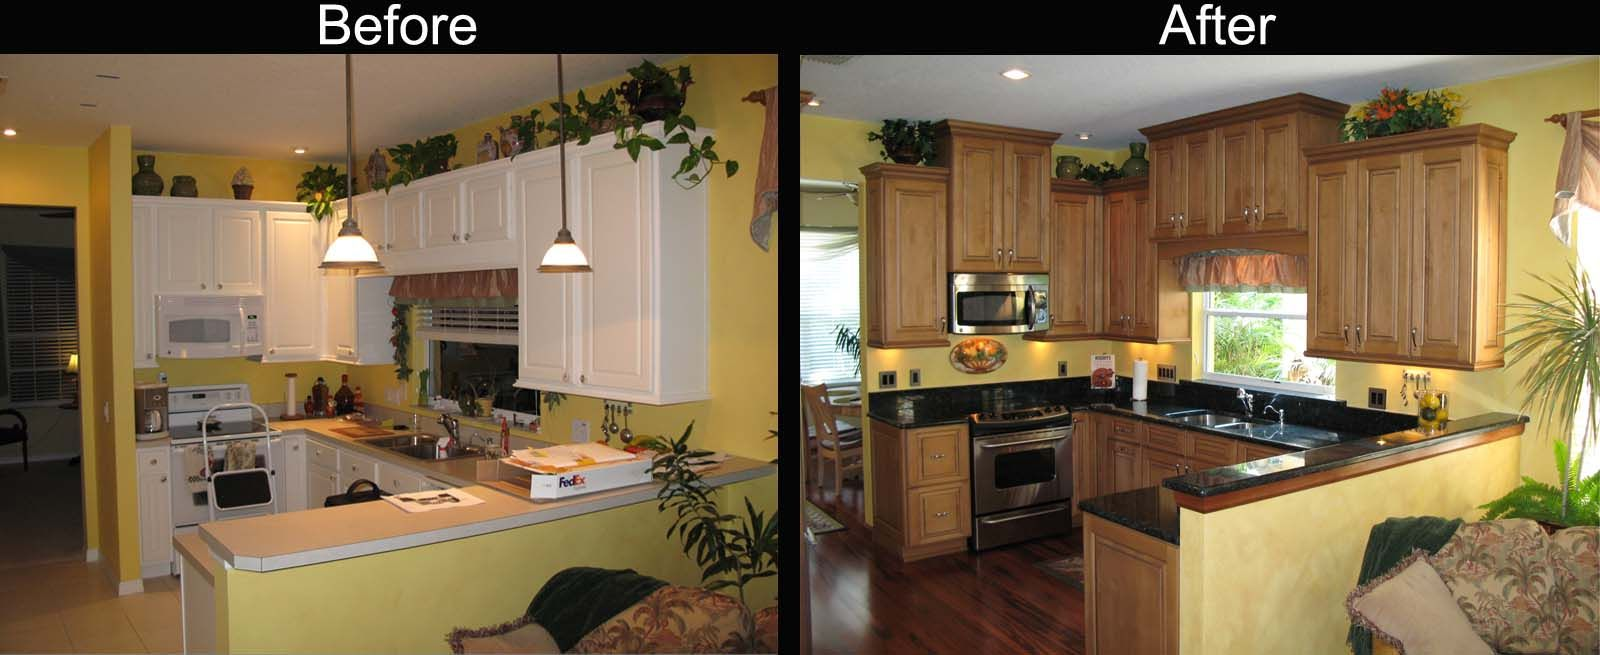 Renovation Ideas Before And After painted cabinets before and after: ideas for your kitchen